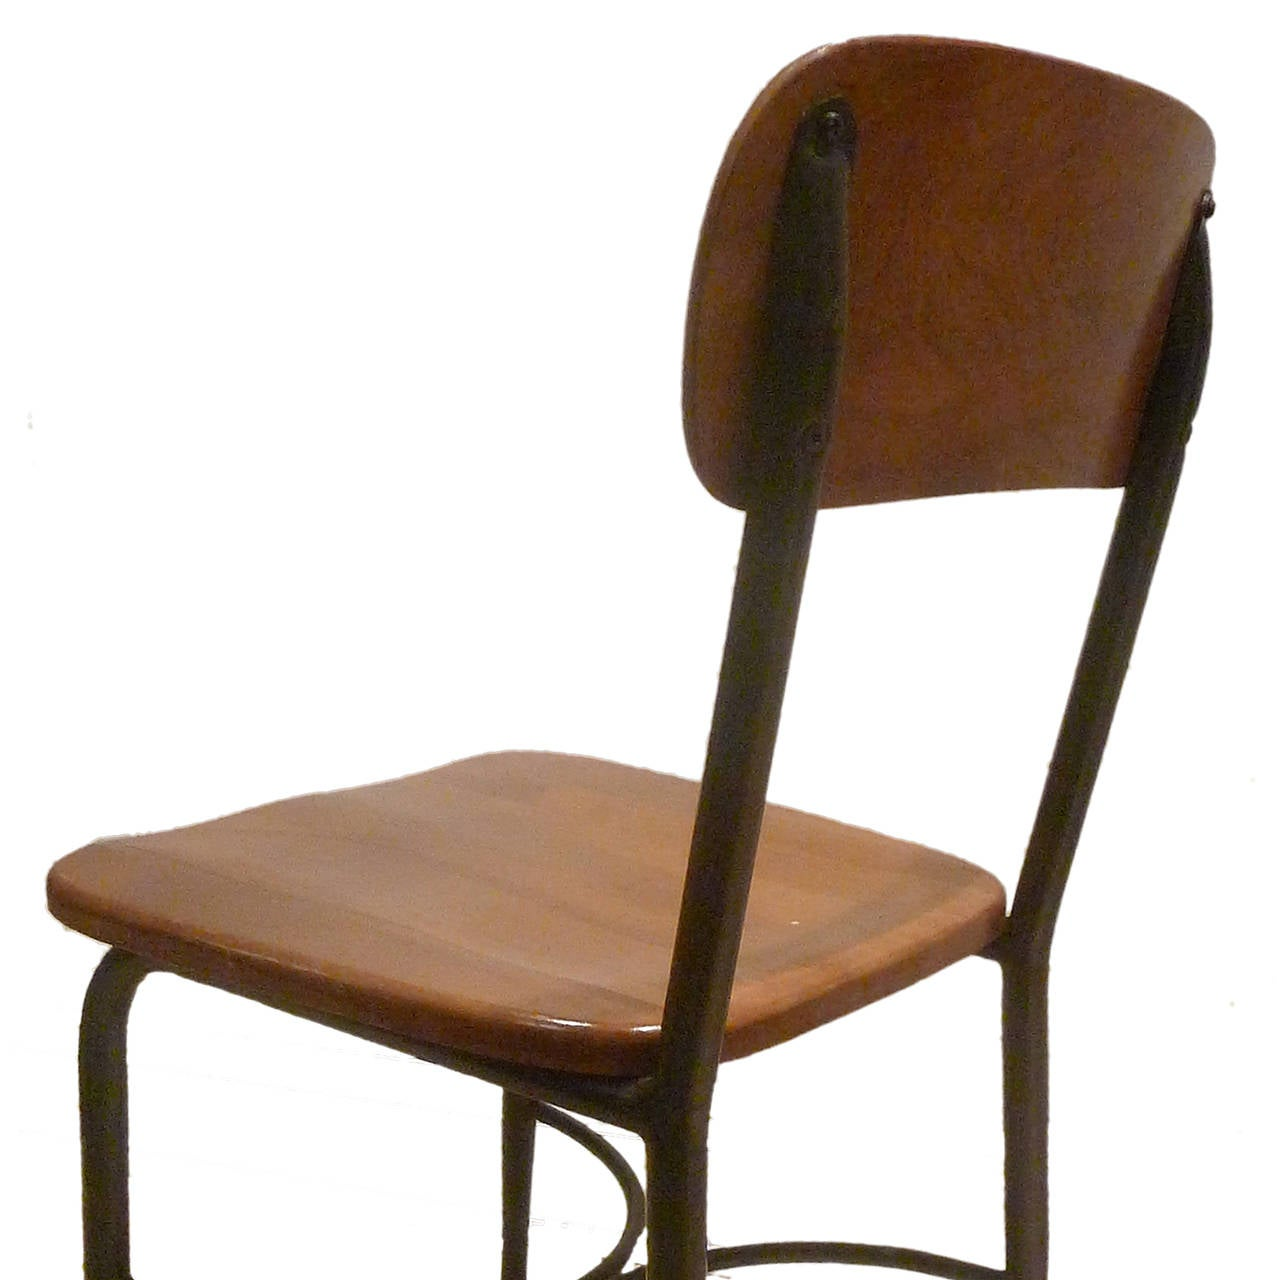 heywood wakefield dogbone chairs hanging chair metal stand 8 adult sized vintage and maple